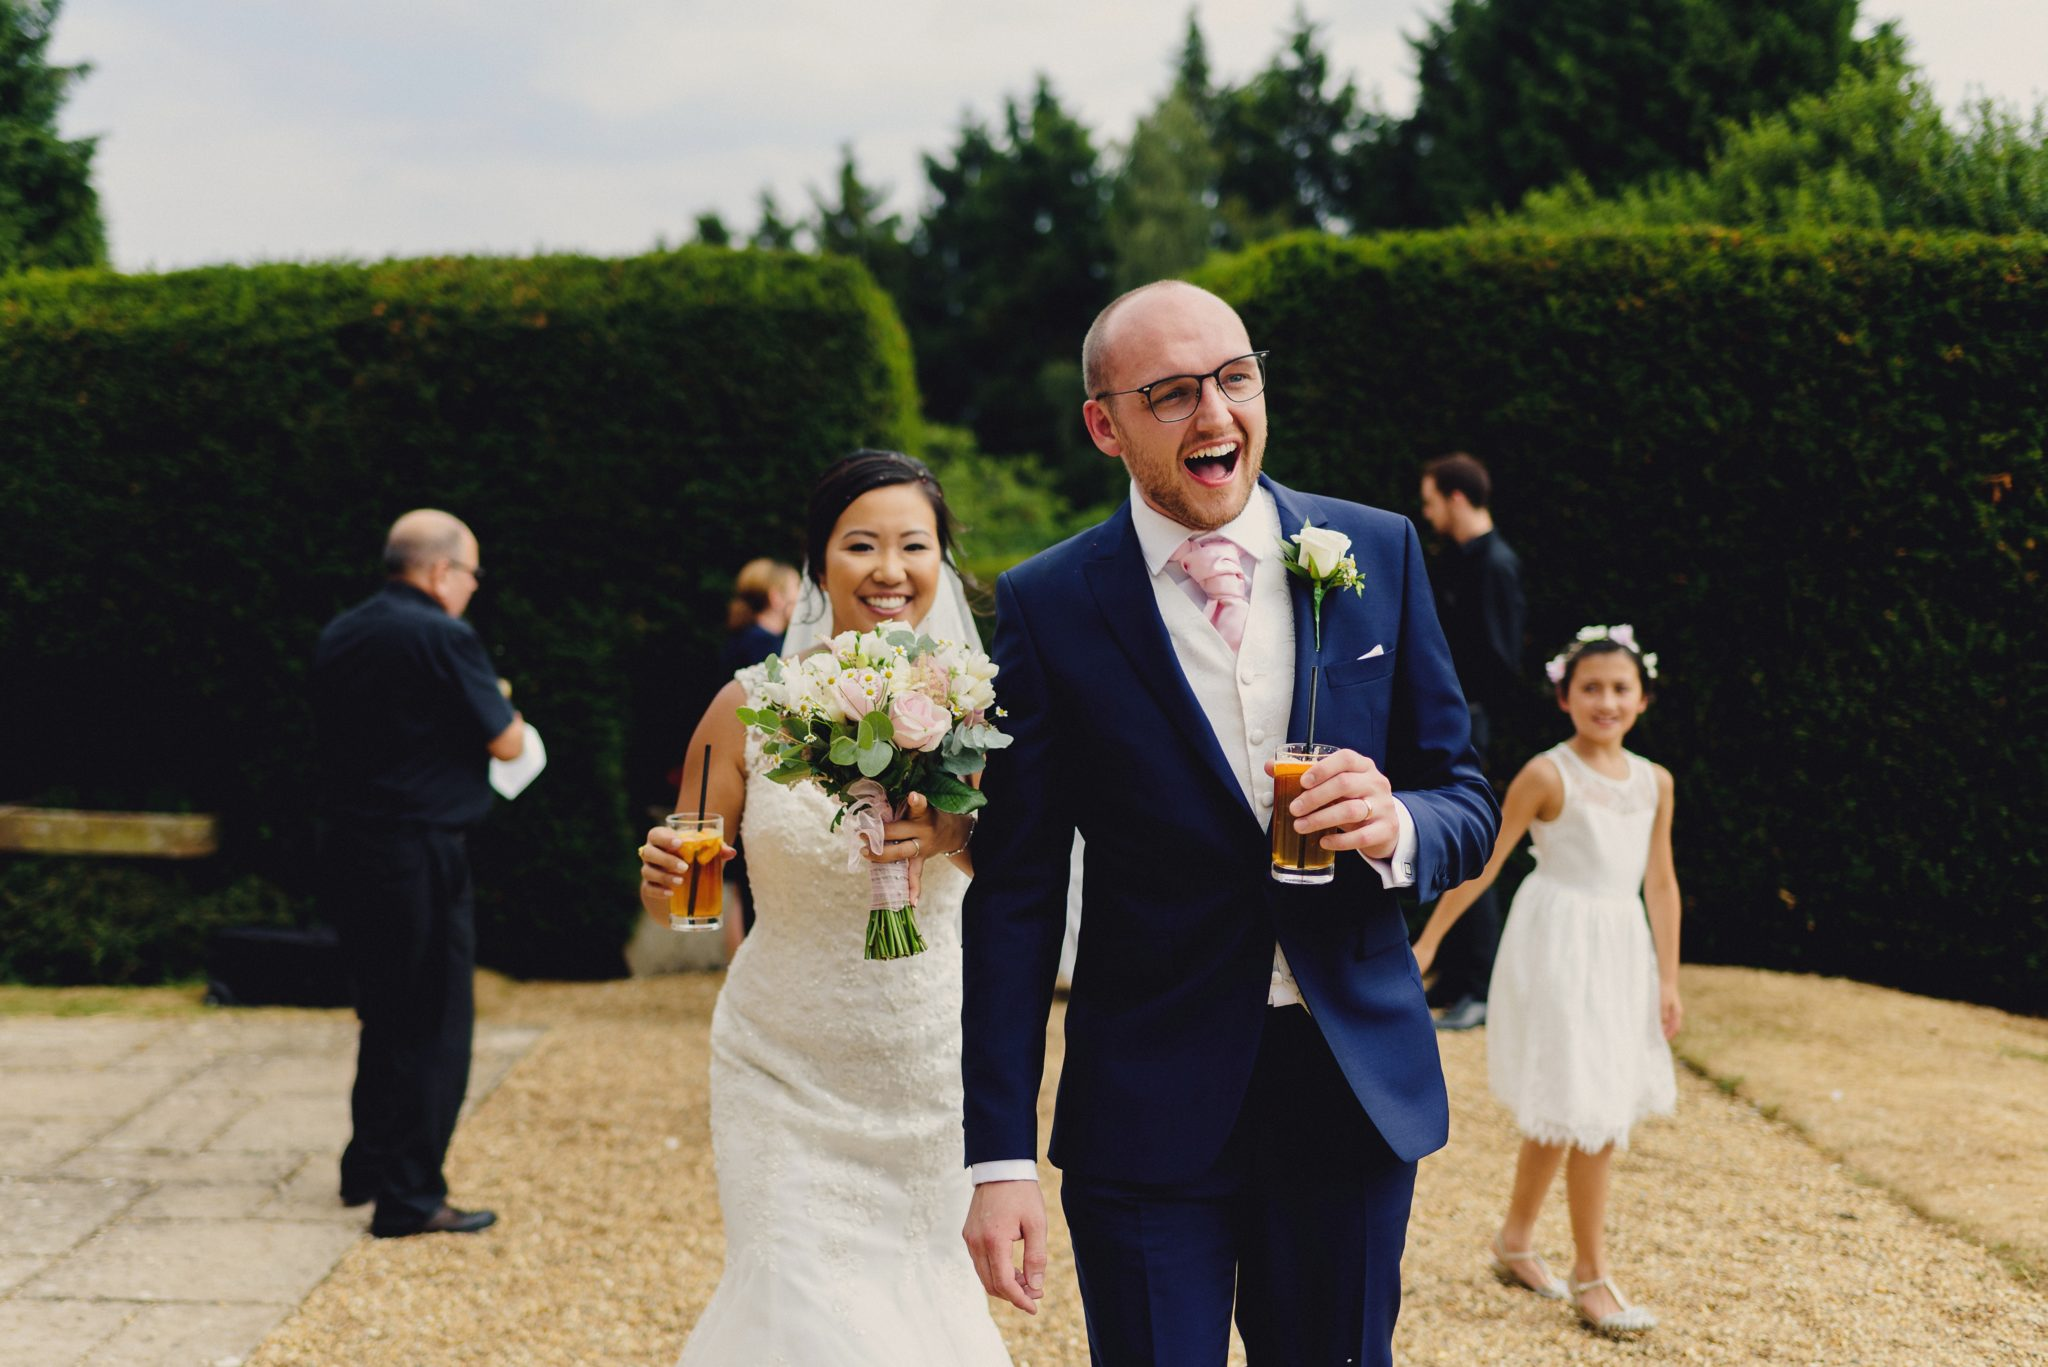 Christian wedding ceremony Fun Elegant British Chinese Wedding at Hartsfield Manor